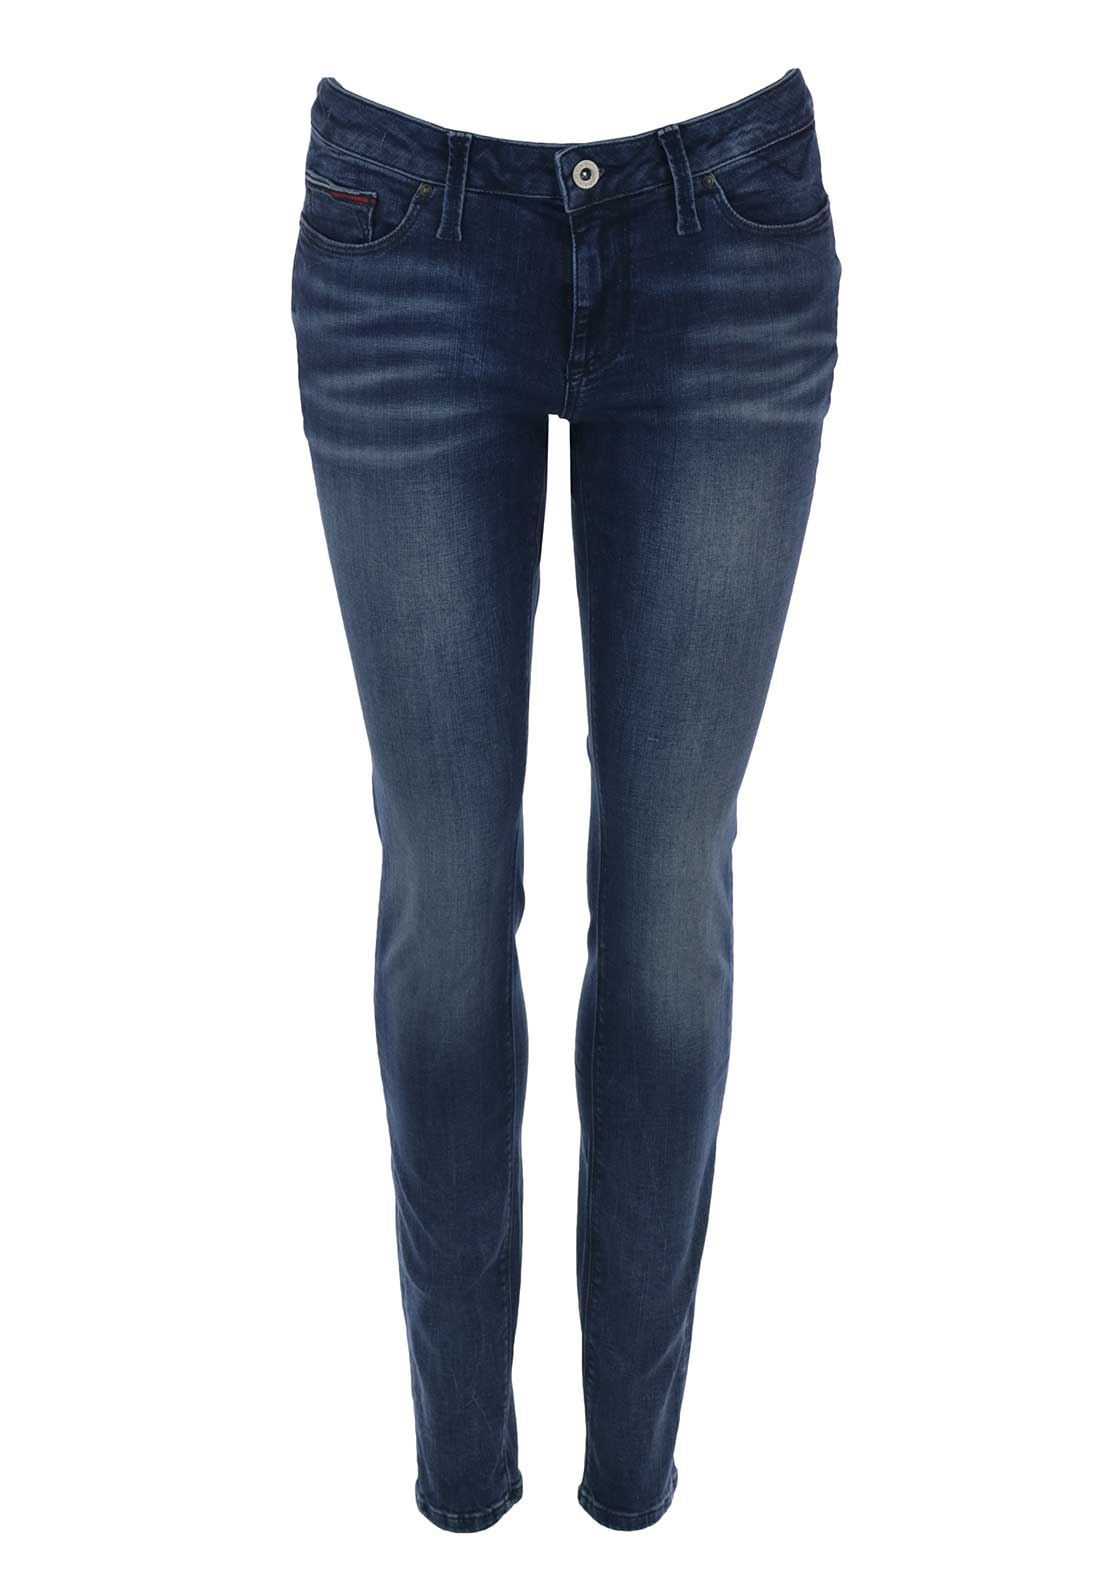 Tommy Hilfiger Womens Nora Midrise Skinny Jeans, Blue Vintage